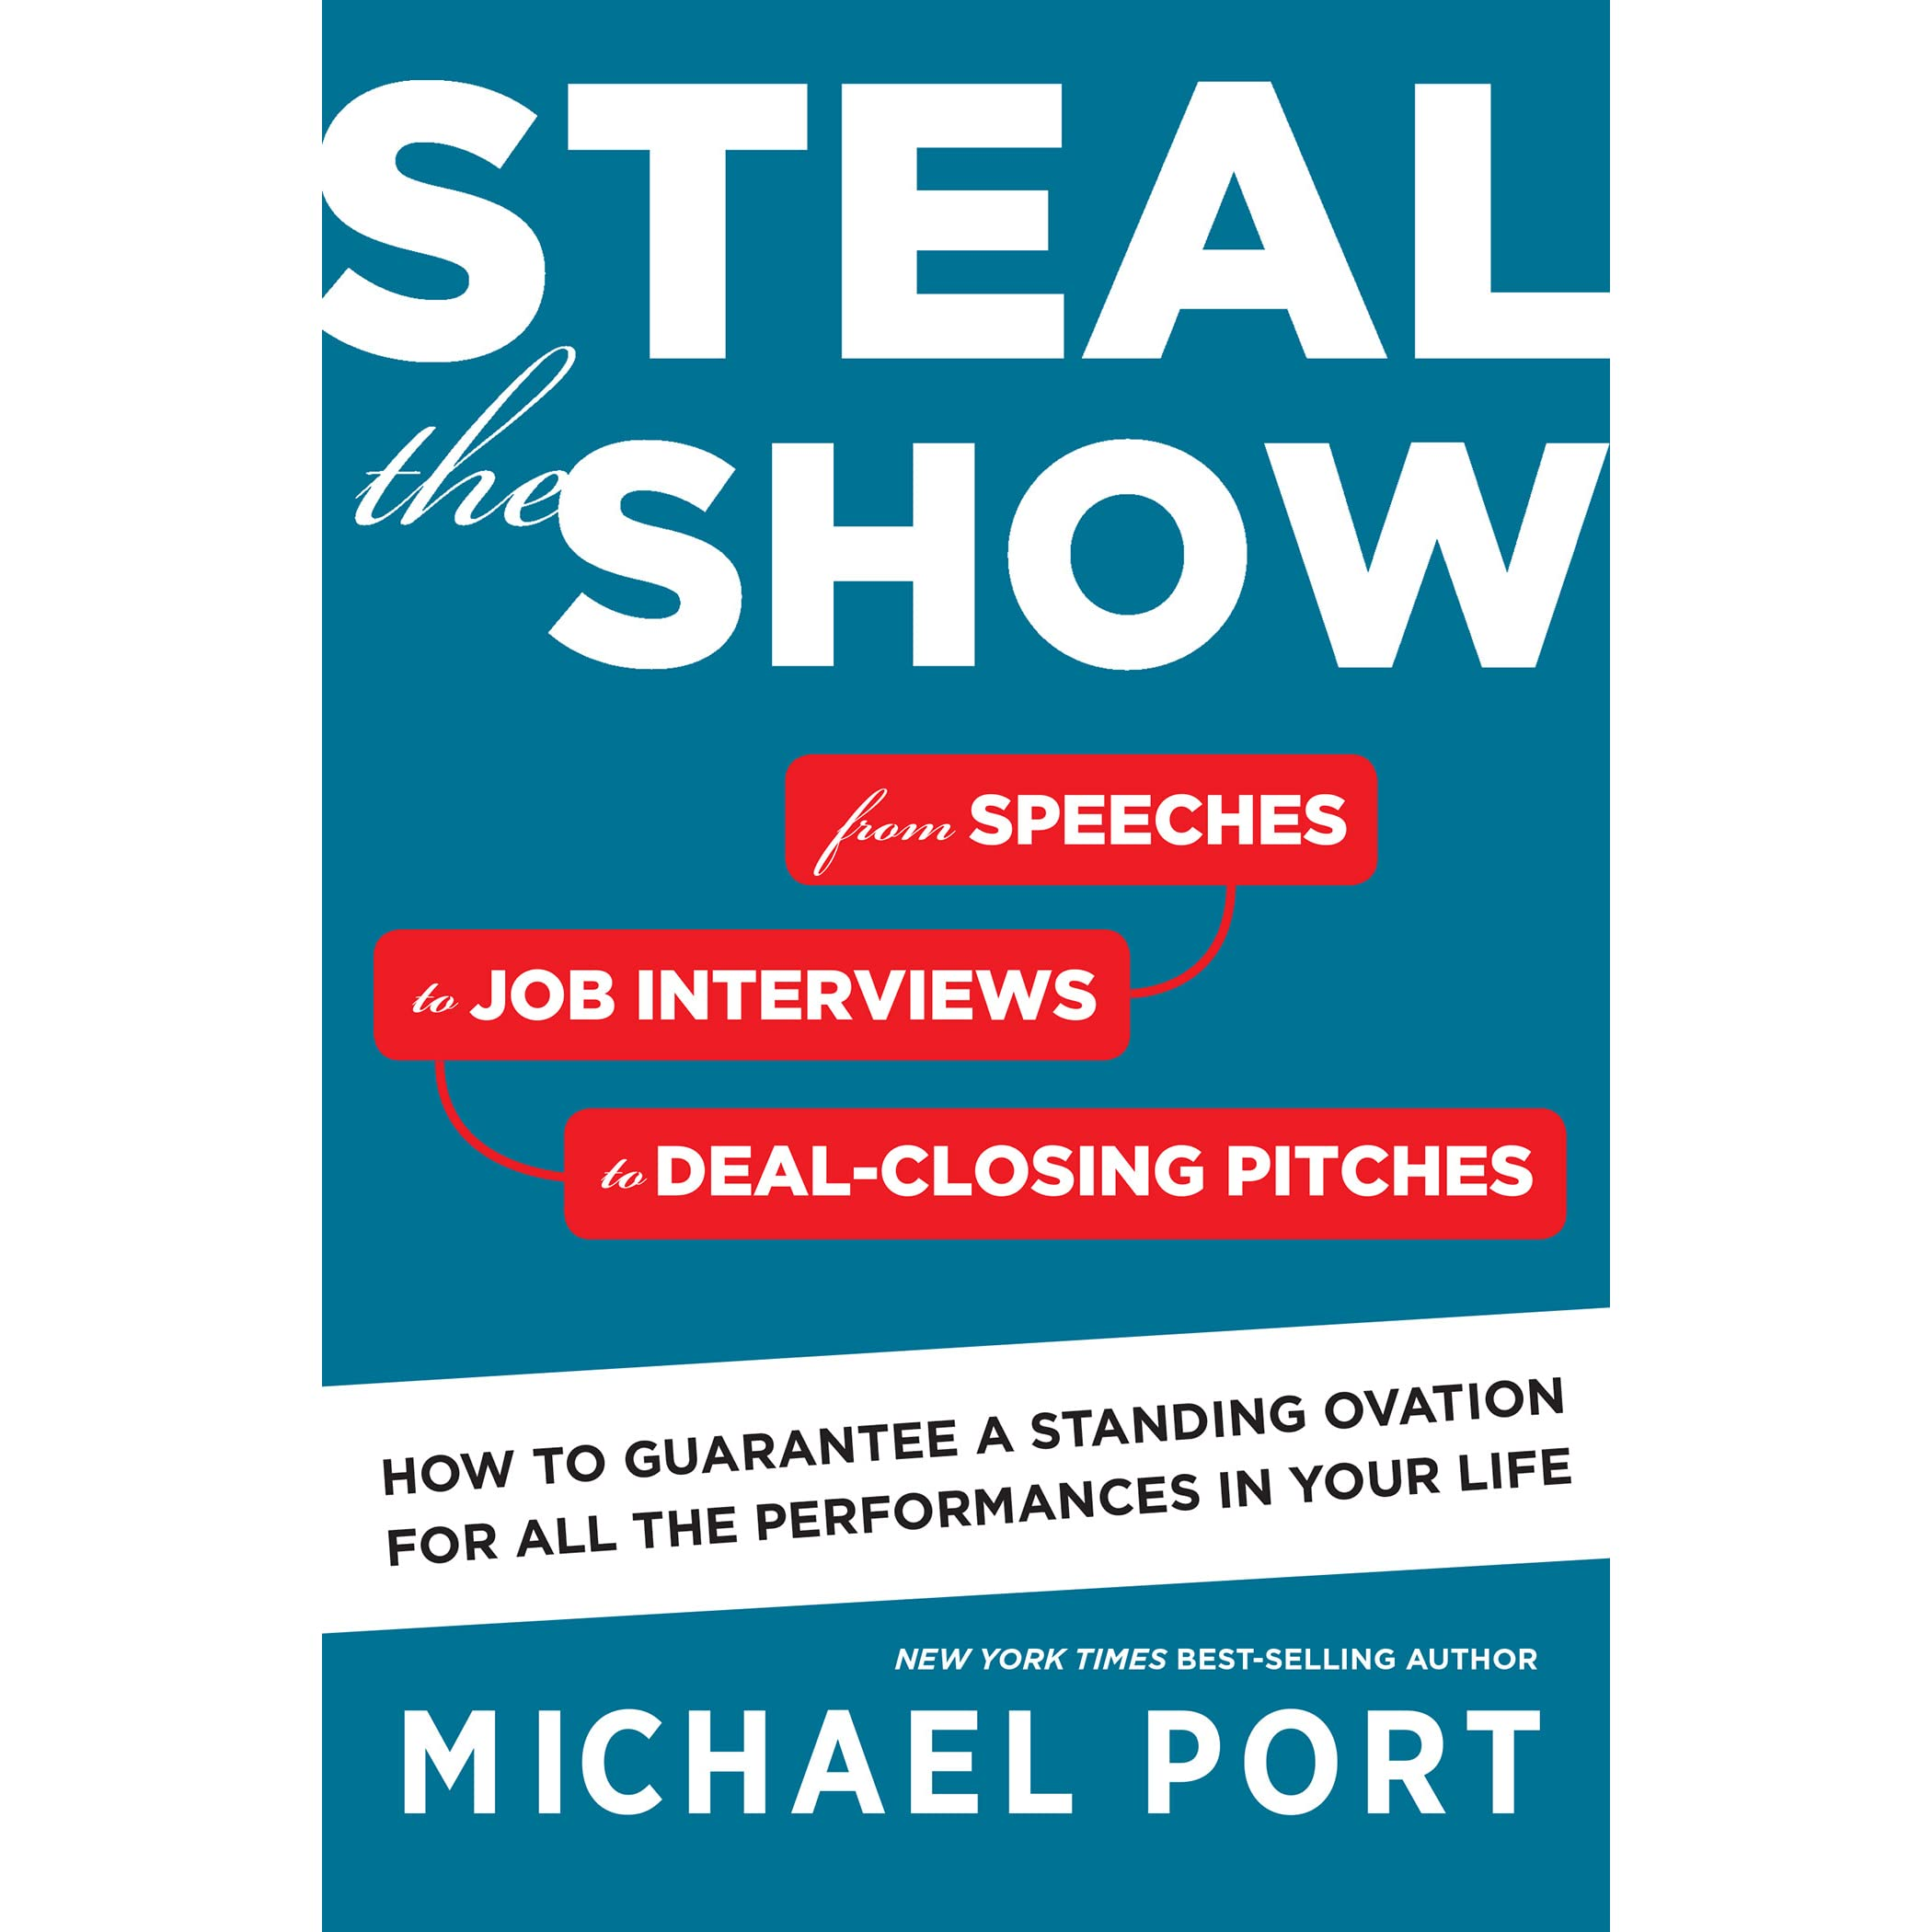 steal the show from speeches to job interviews to deal closing steal the show from speeches to job interviews to deal closing pitches how to guarantee a standing ovation for all the performances in your life by